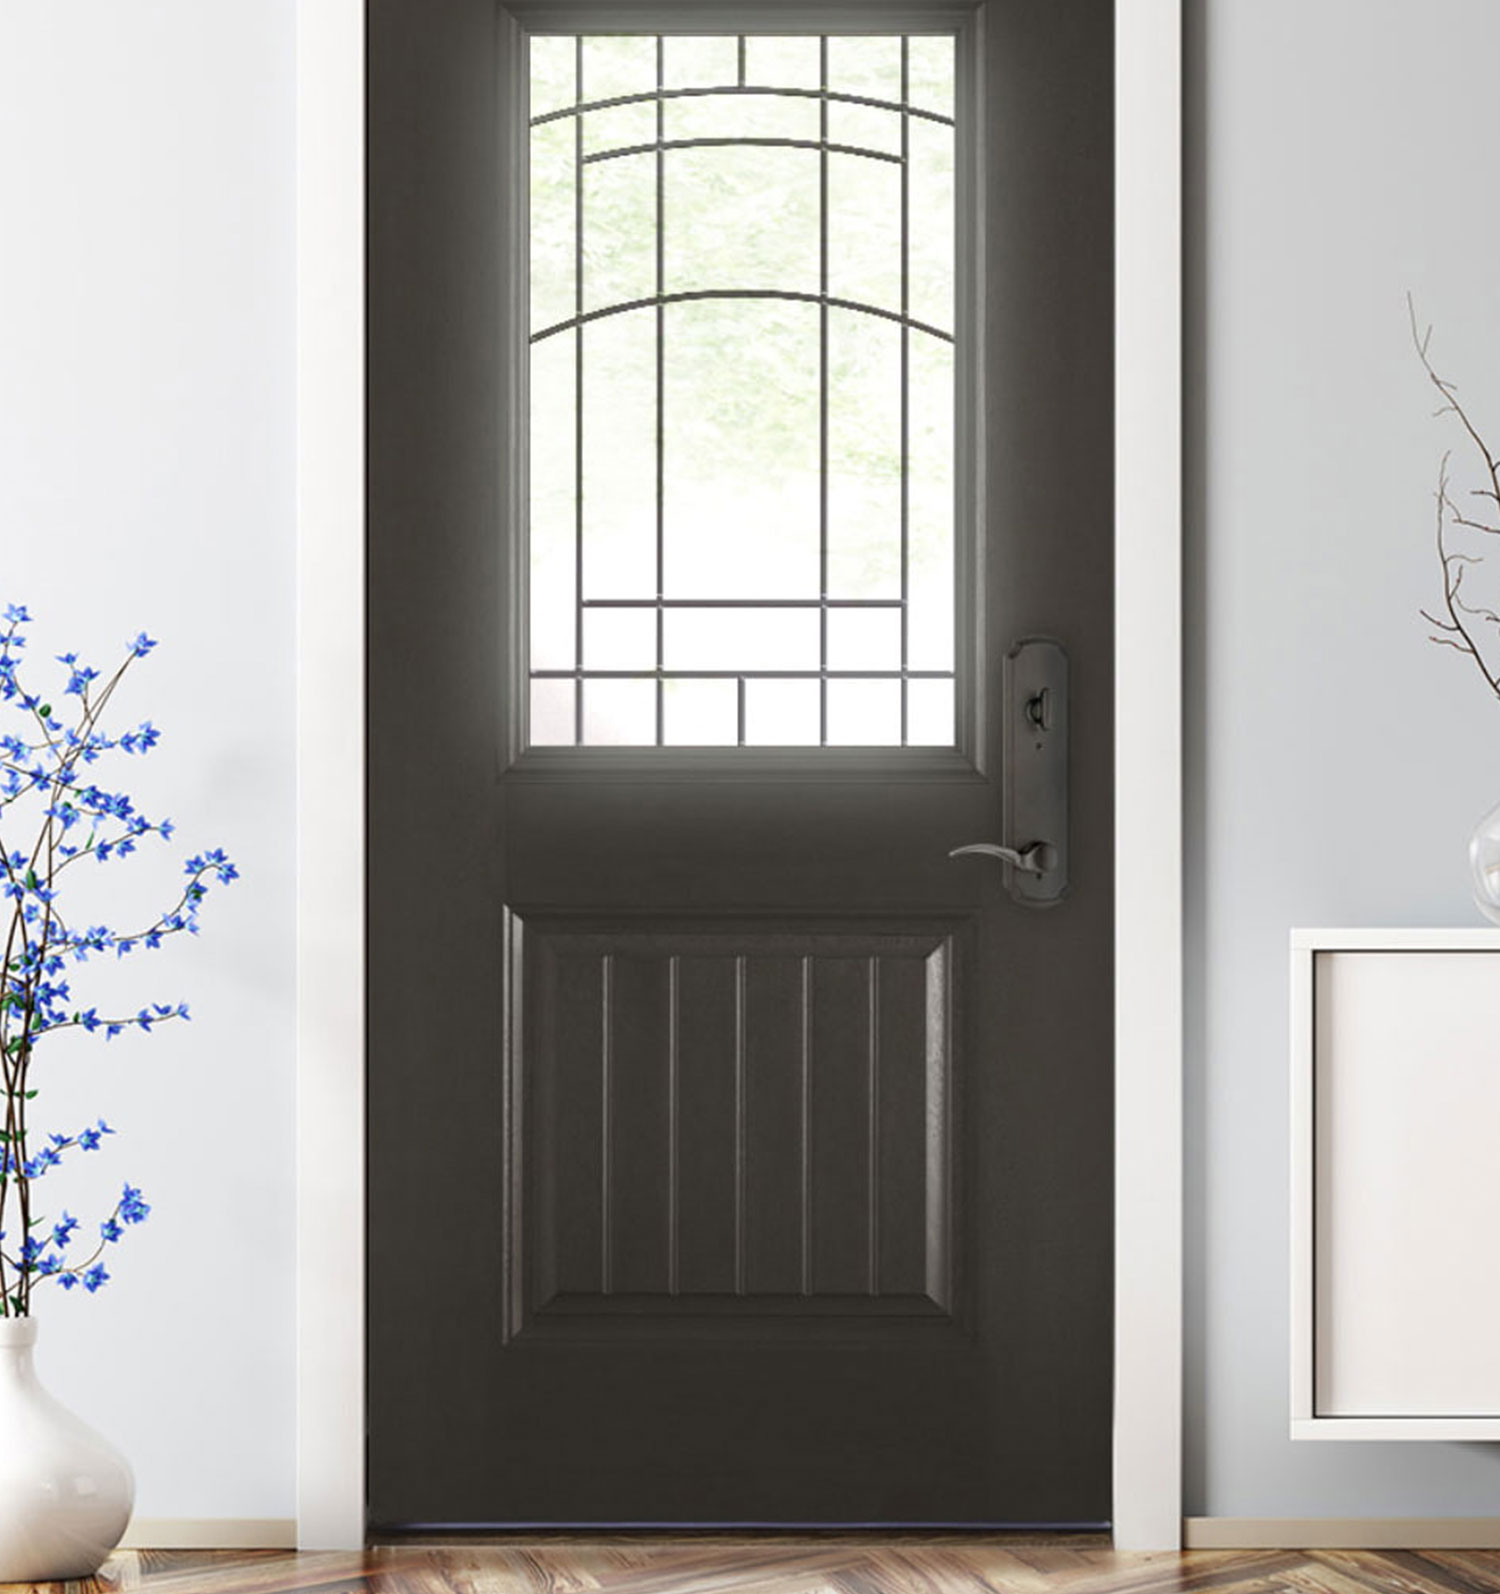 Inside a home with a fiberglass entry door from The Folding Door Store in Southern California.